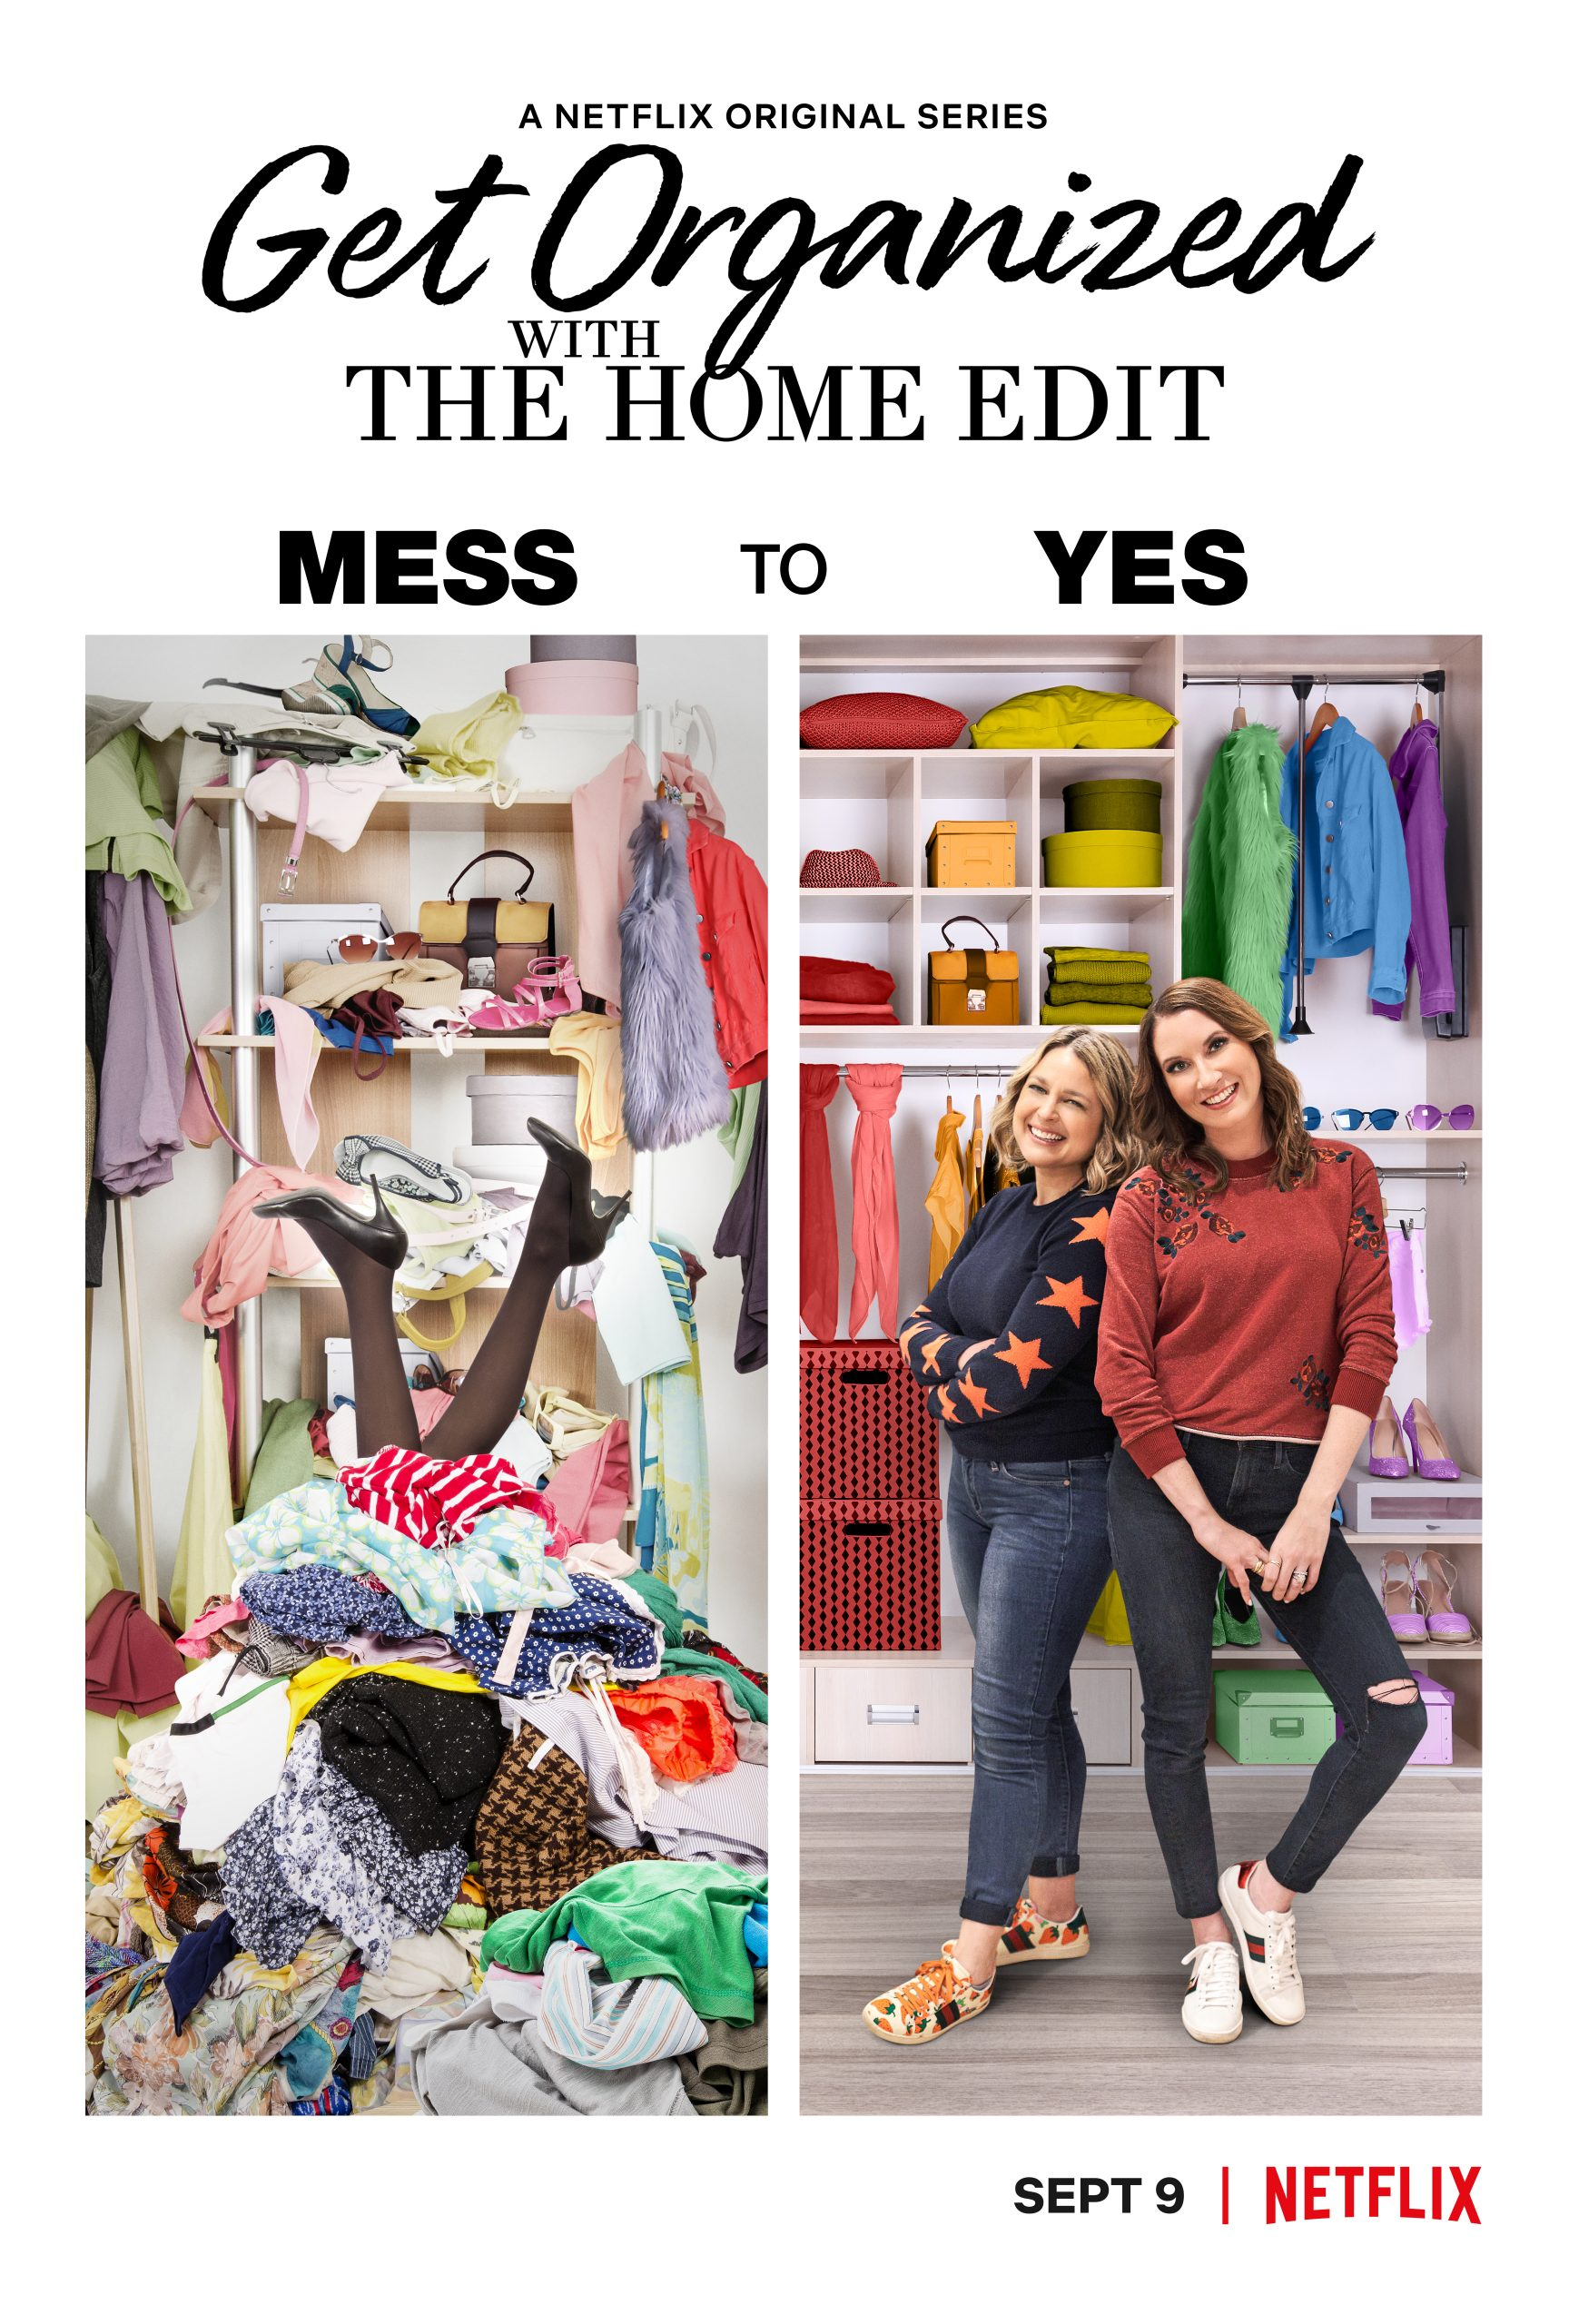 NETFLIX TRAILER DEBUT: Get Organized With The Home Edit